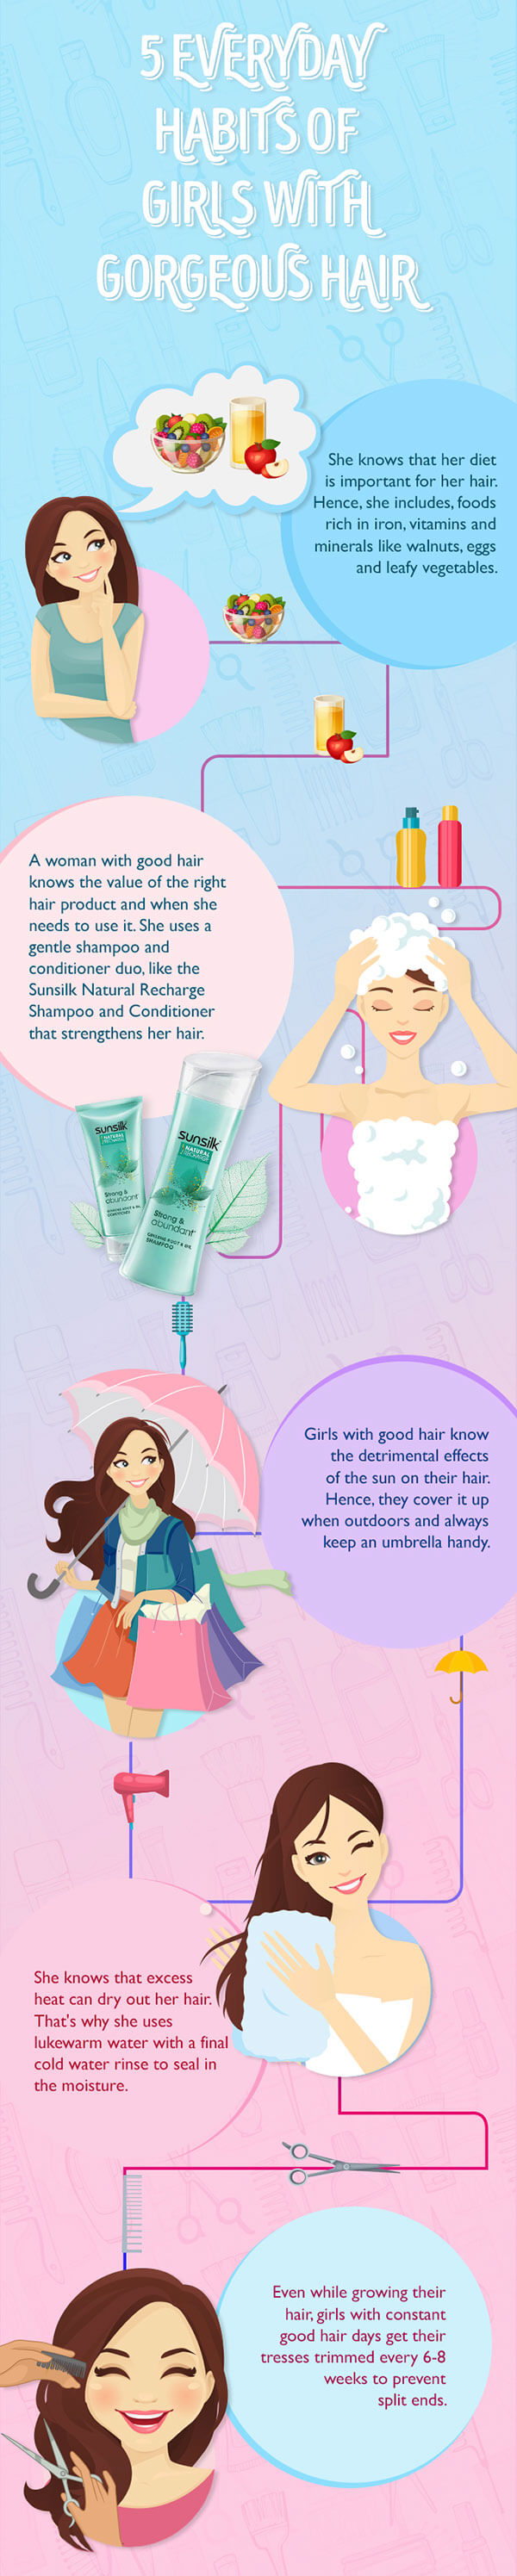 5 everyday habits of girls with gorgeous hair